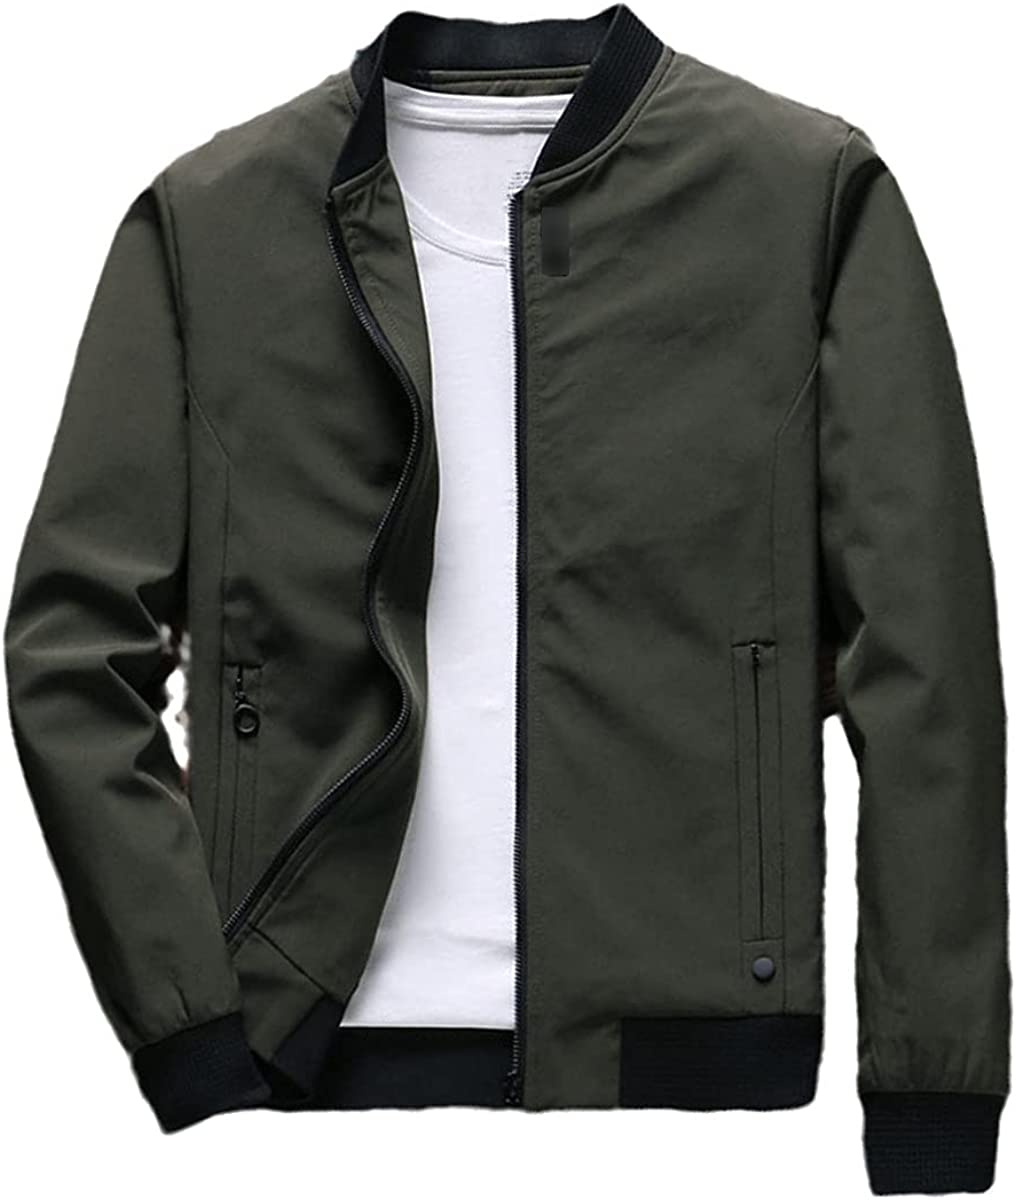 Men's Ranking TOP3 Jacket Limited time cheap sale Casual Zipper Thin Autumn Coat Spring